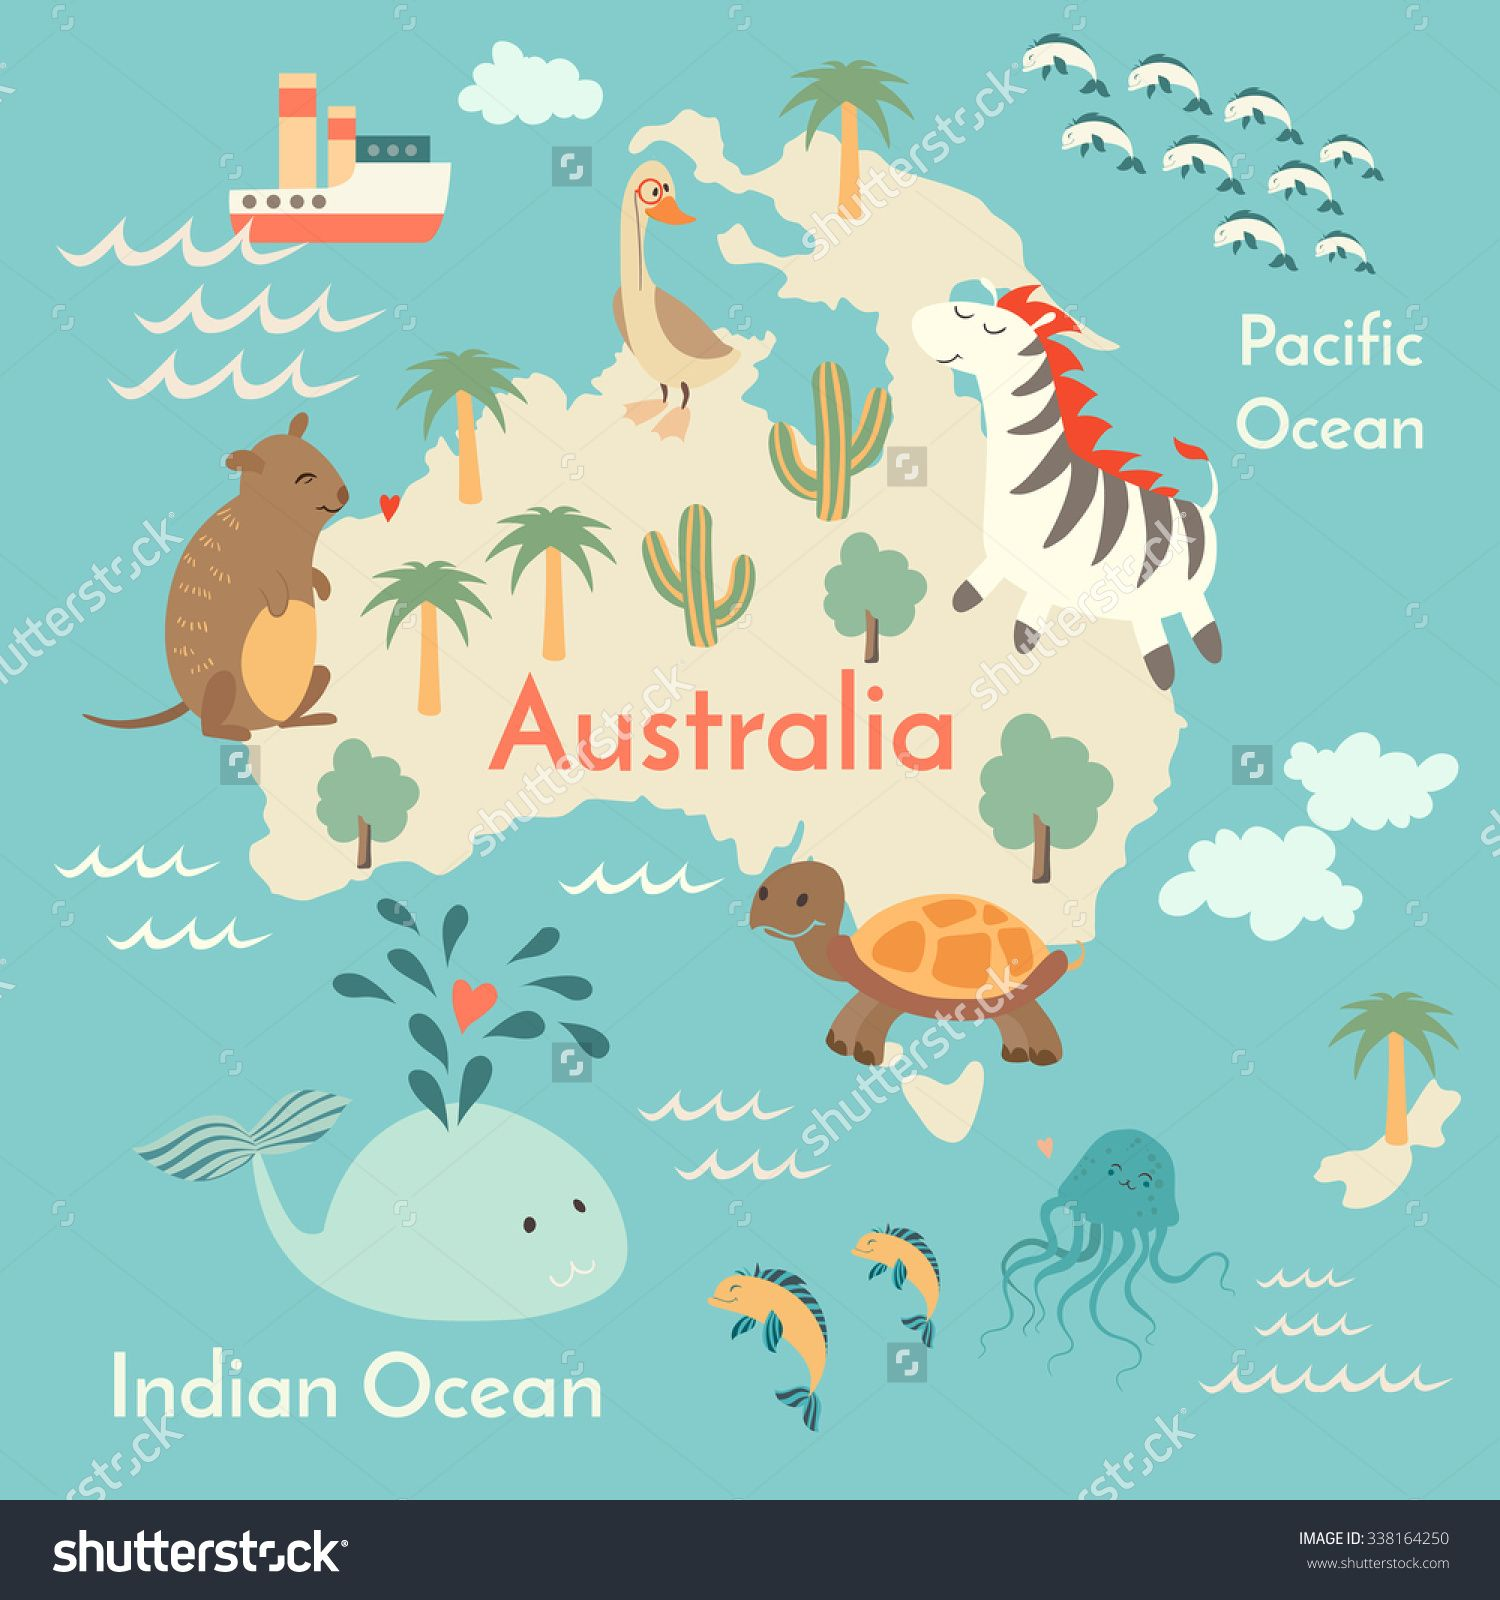 Animals World Map AustraliaAustralia Map For ChildrenKids - Australia in world map